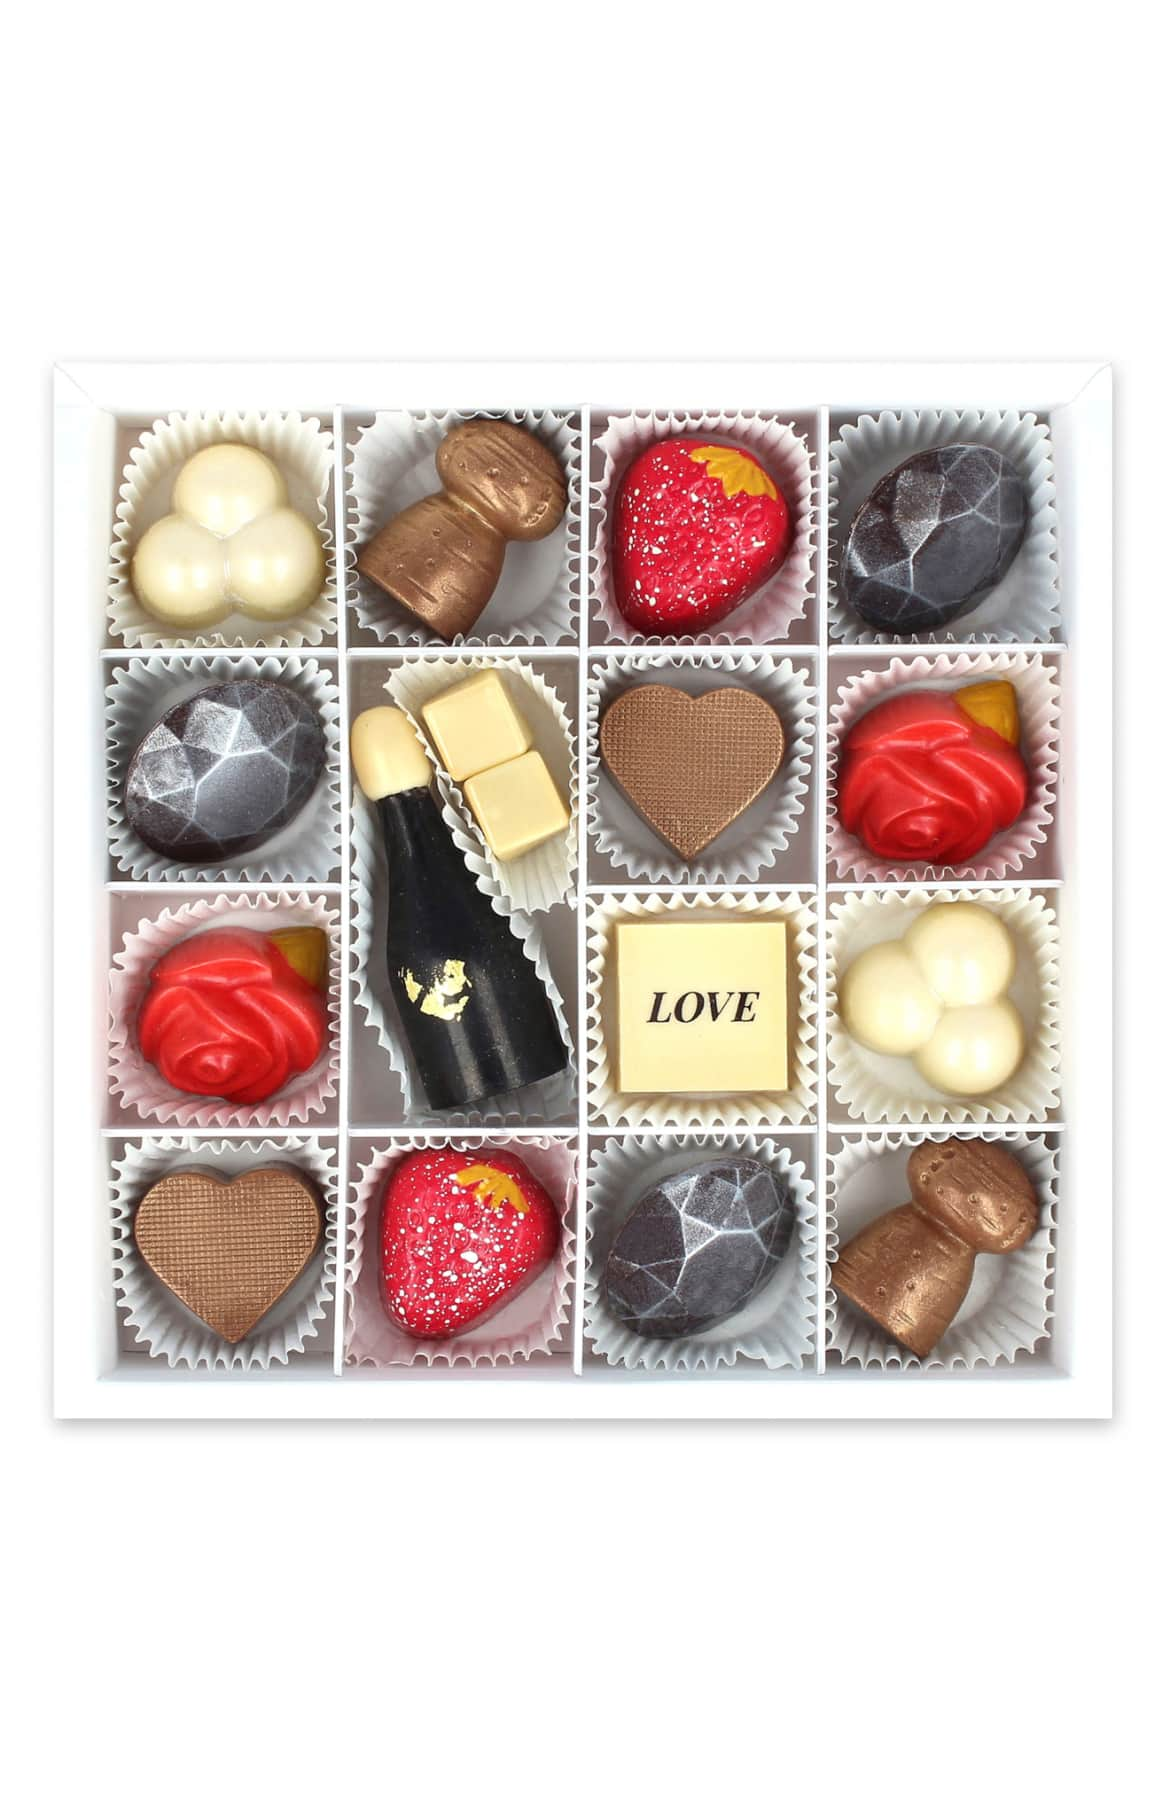 Looking for a romantic Valentine's Day gift for your plus one? We've put together the ultimate gift guide filled with unique Valentine's Day ideas to show your partner you love them to the moon and back!  From sweet treats to spicy meats (cause nothing says love like a big box of jerky) we've got you covered!{ }(Image: Nordstrom){ }